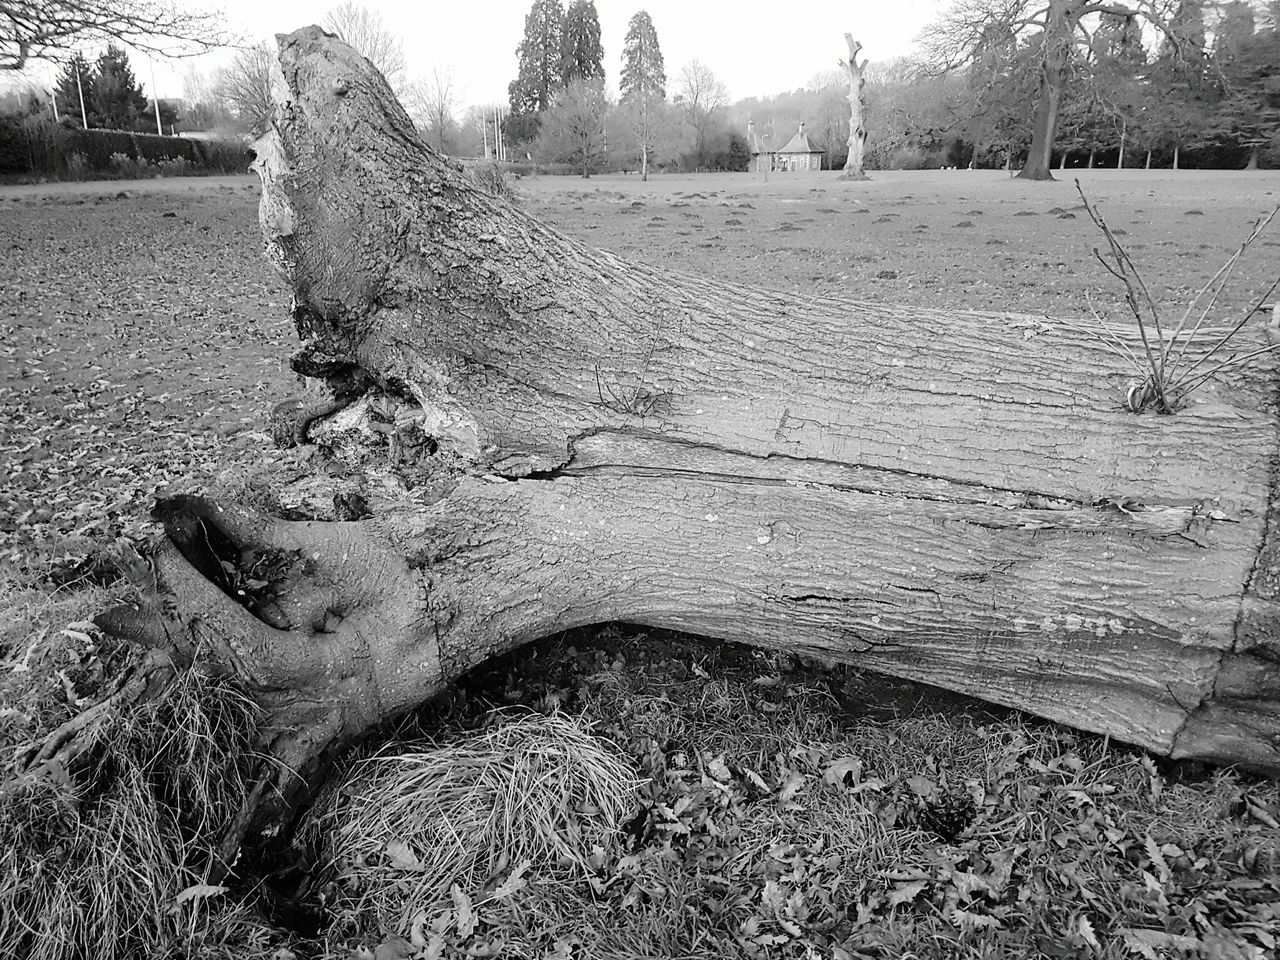 Operation anchorage Tree Grass Outdoors No People Nature Day Sky National Trust 🇬🇧 Tree Landscape Tredegar House Newport Textured  Wood - Material Decaying Wood Cracked Rotting Wood Dead Tree Rotting Tree Trunk Dead Plant Beauty In Nature Decaying Fallen Tree Nature Felled Tree